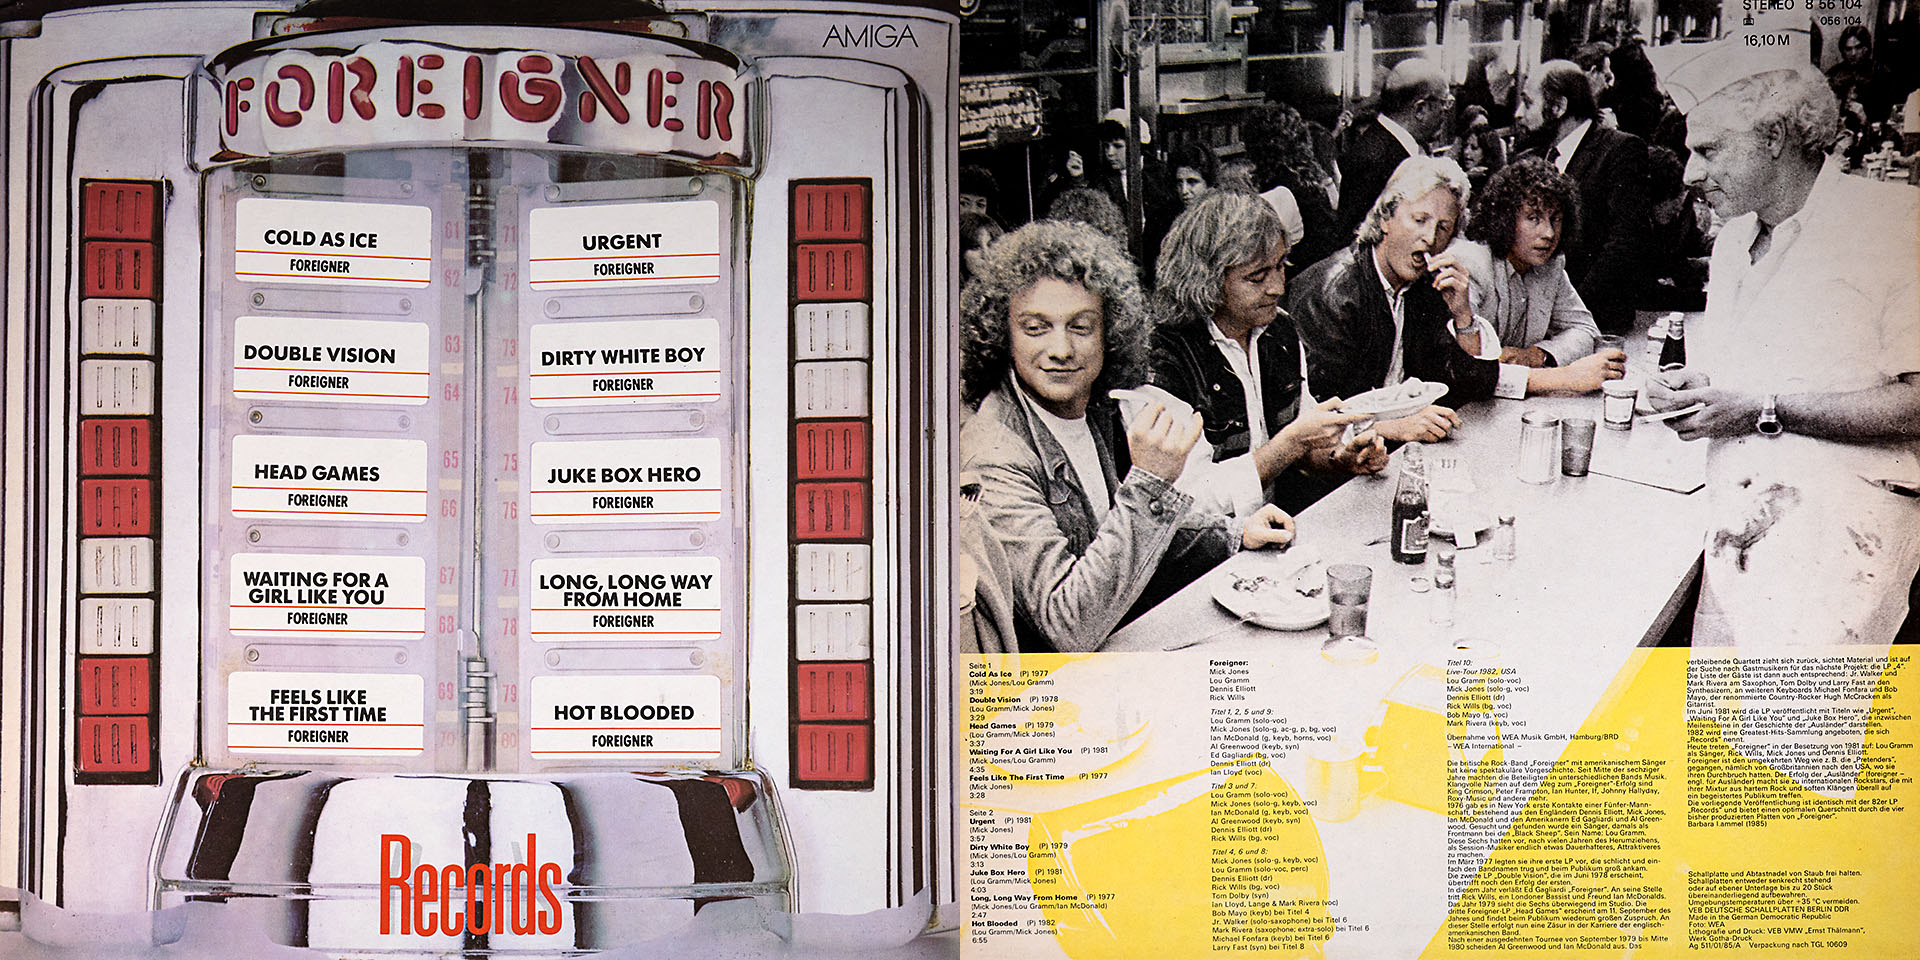 Foreigner - Records - Foreigner